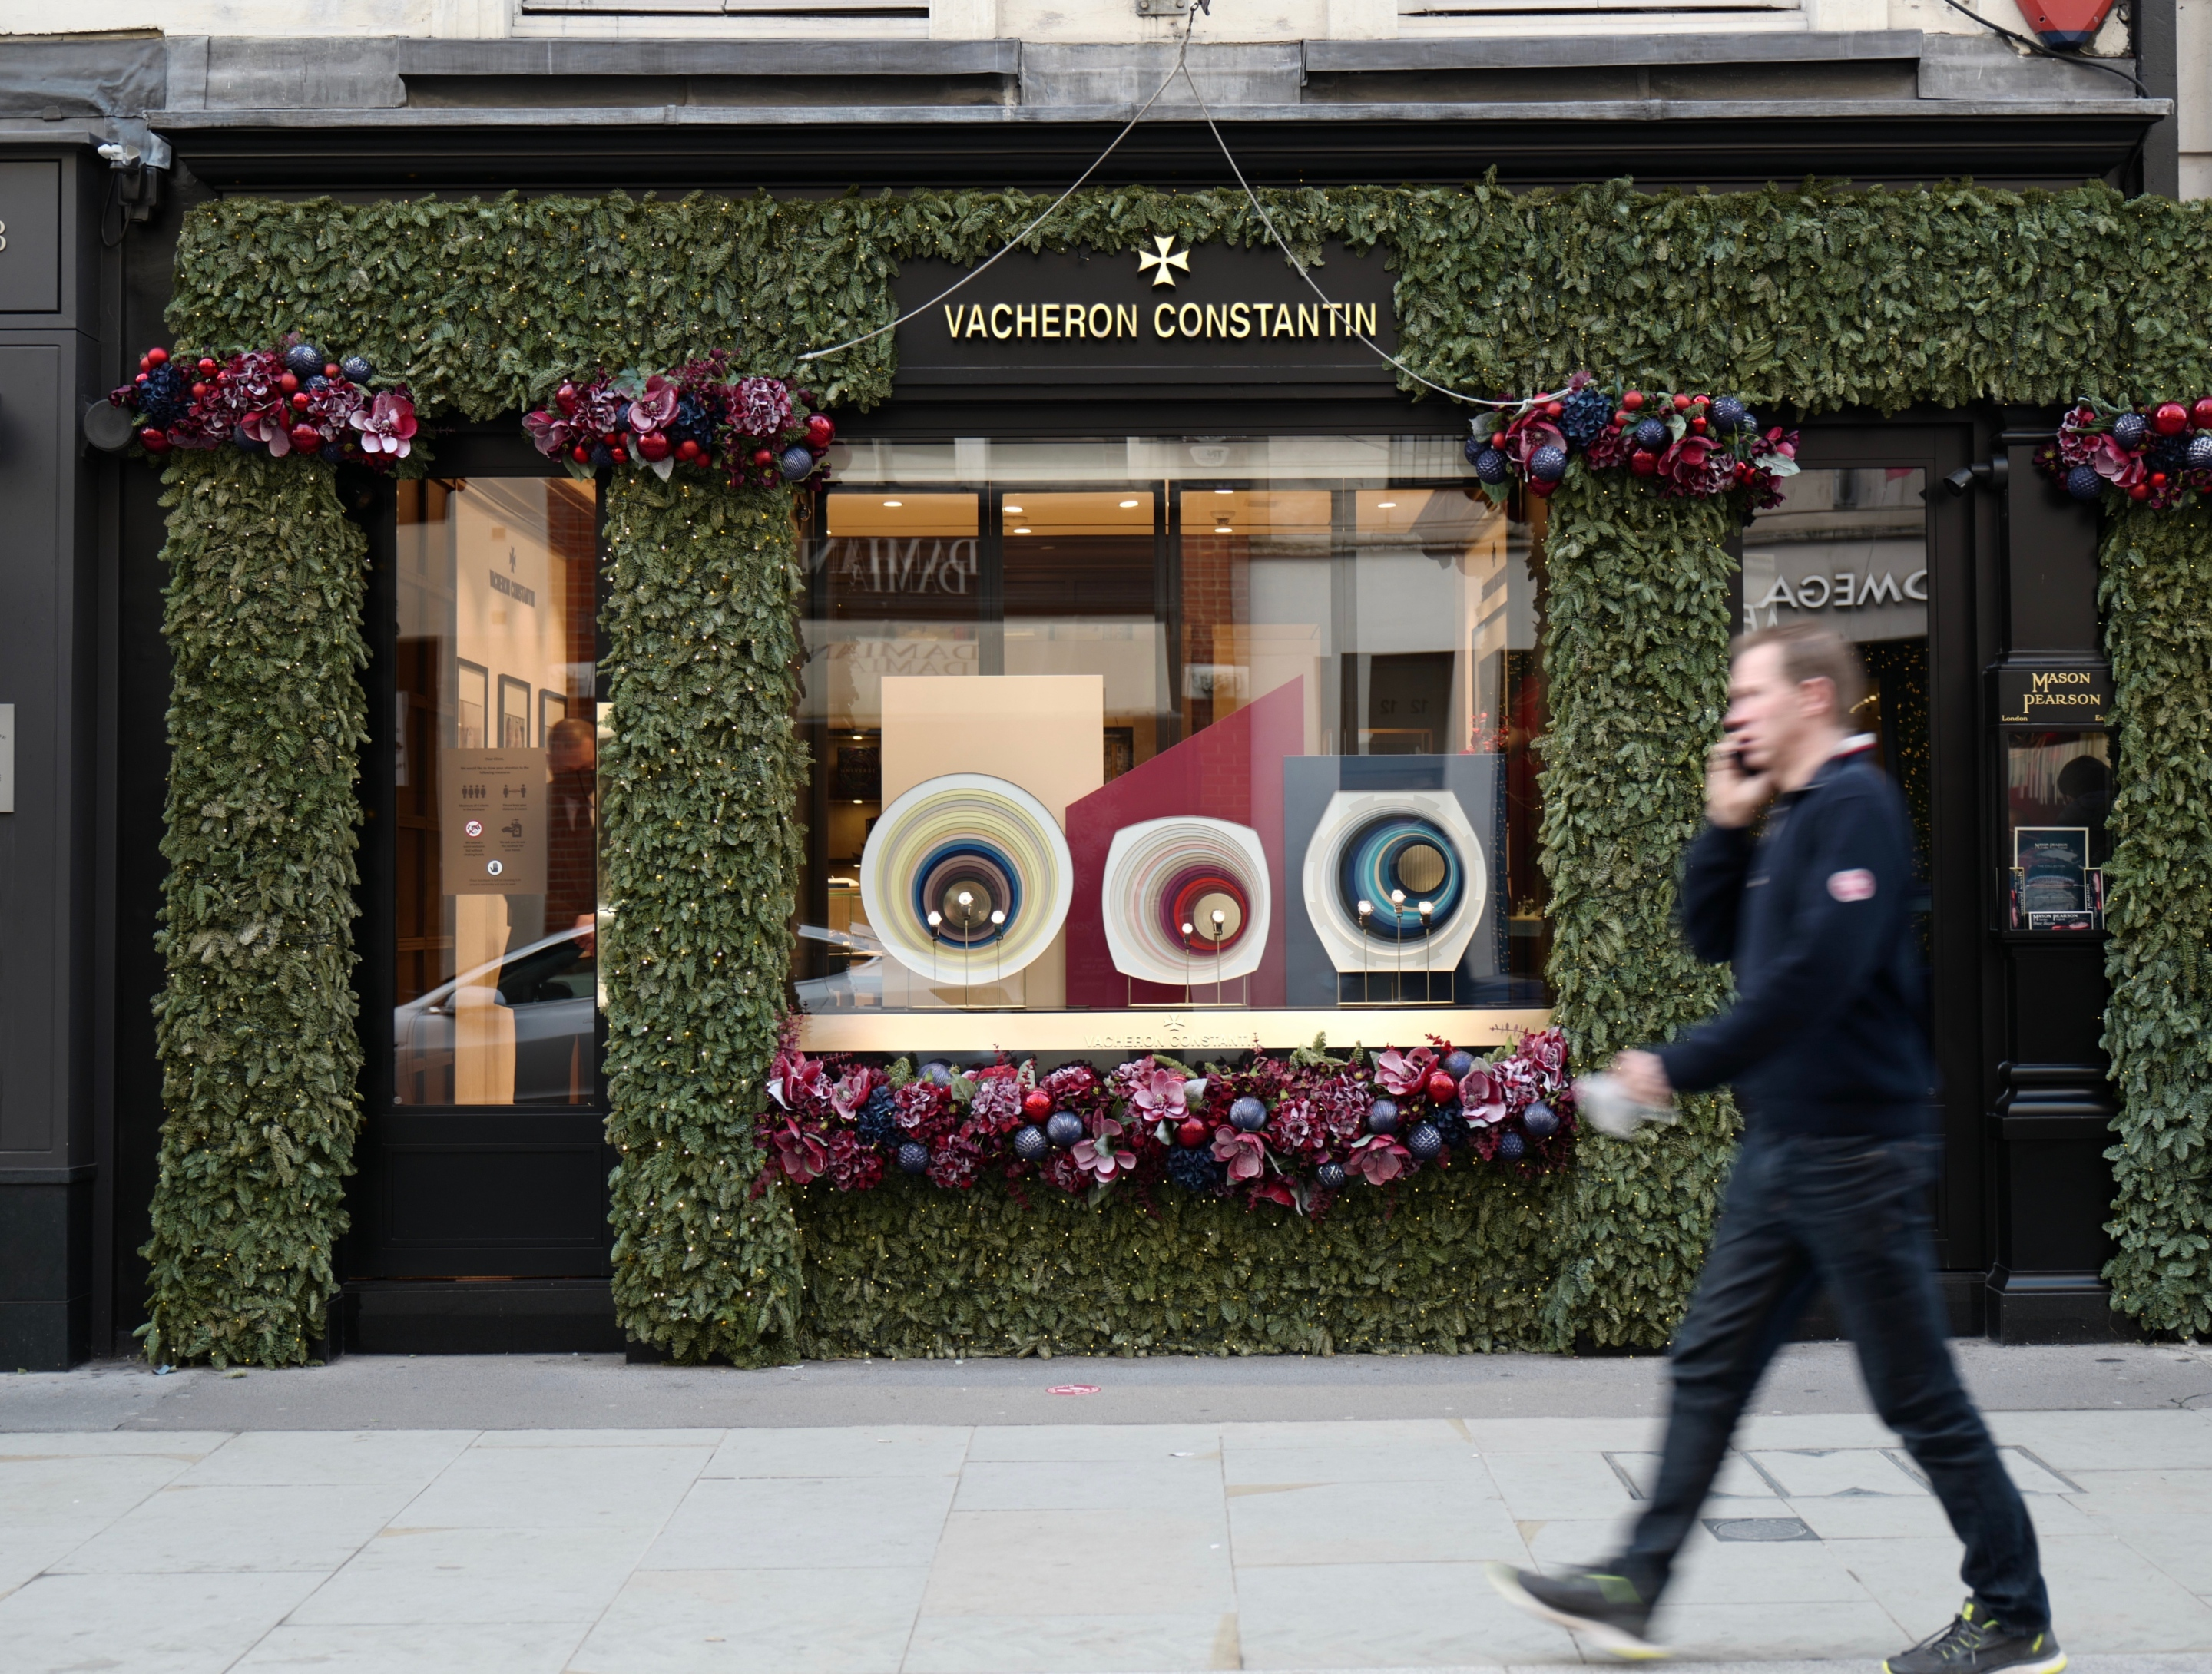 Vacheron Constantin zero per cent finance options London Bond Street 02